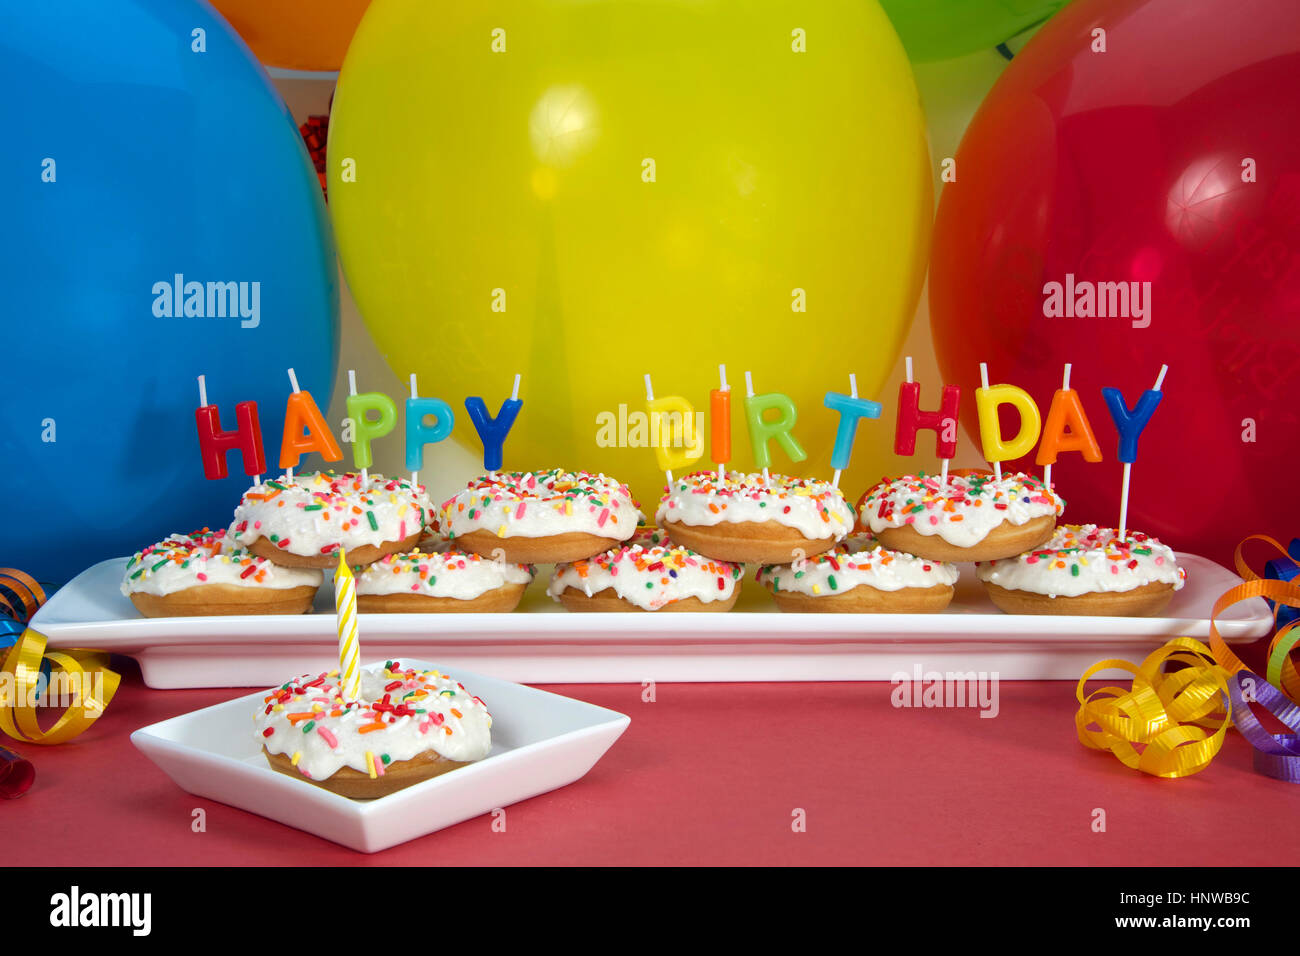 Miniature Donut Cake On Long White Plate With Happy Birthday Candles One Single Square Blue Candle Perfect First